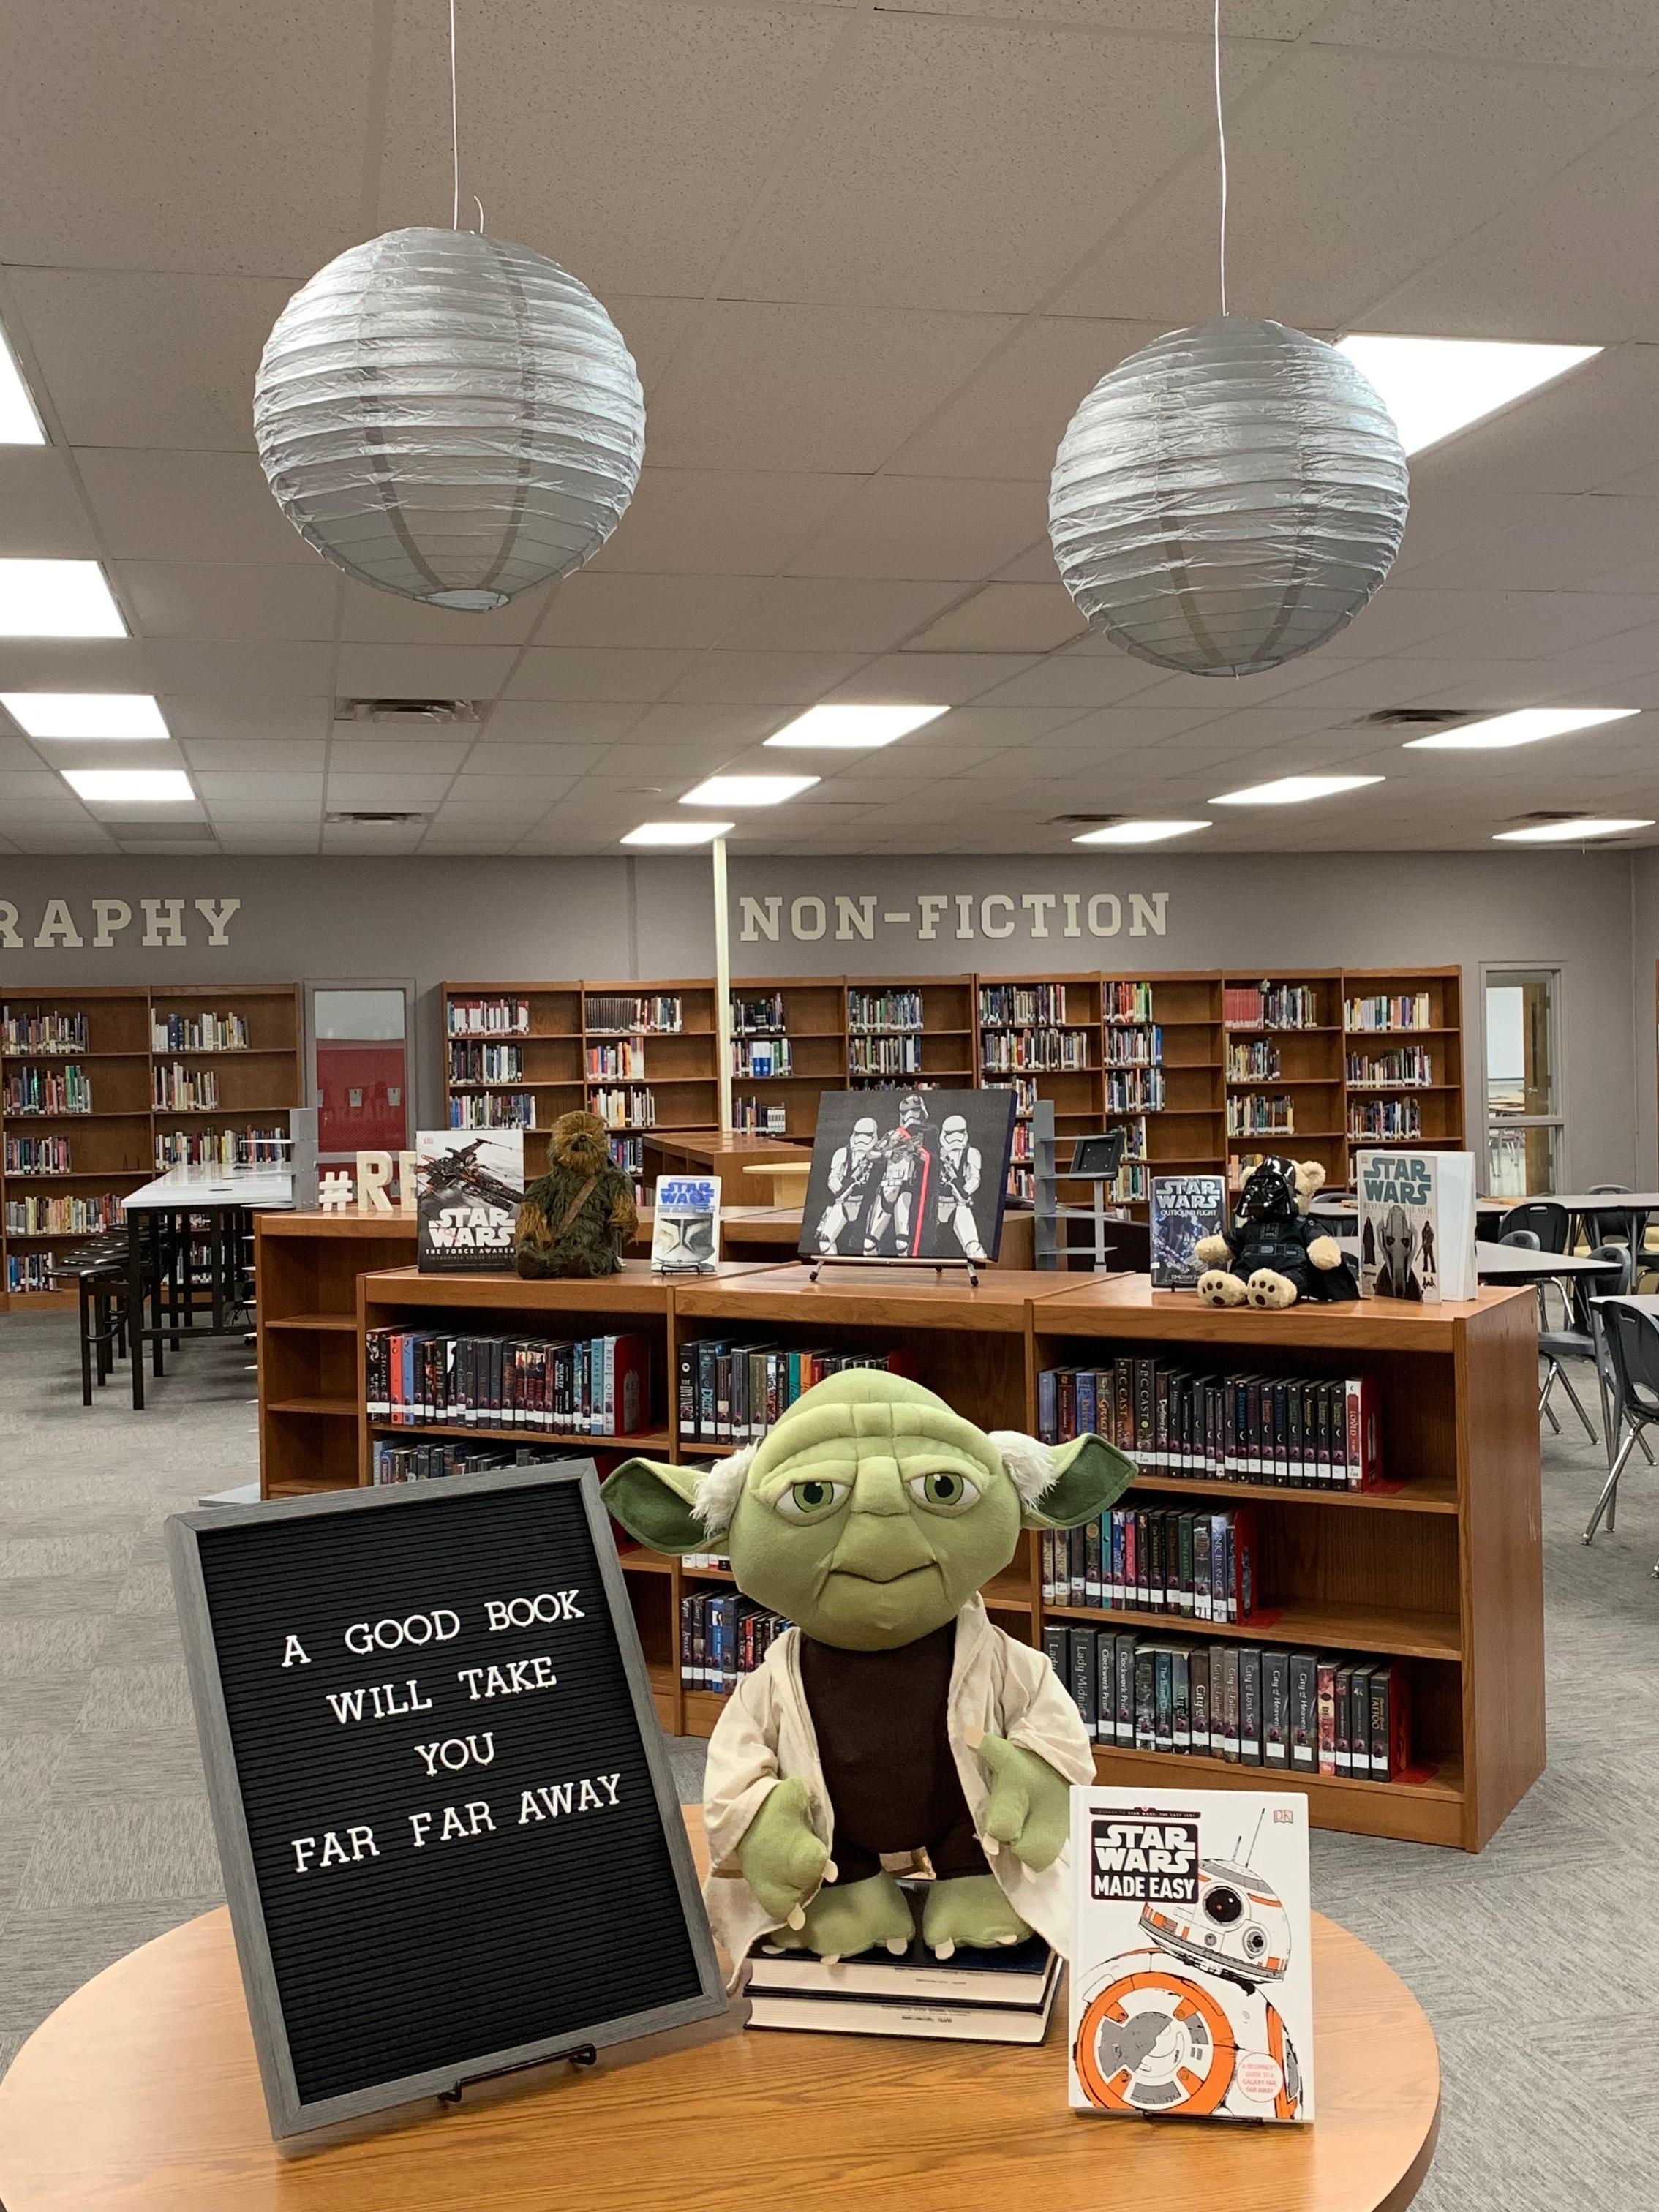 Star wars library theme